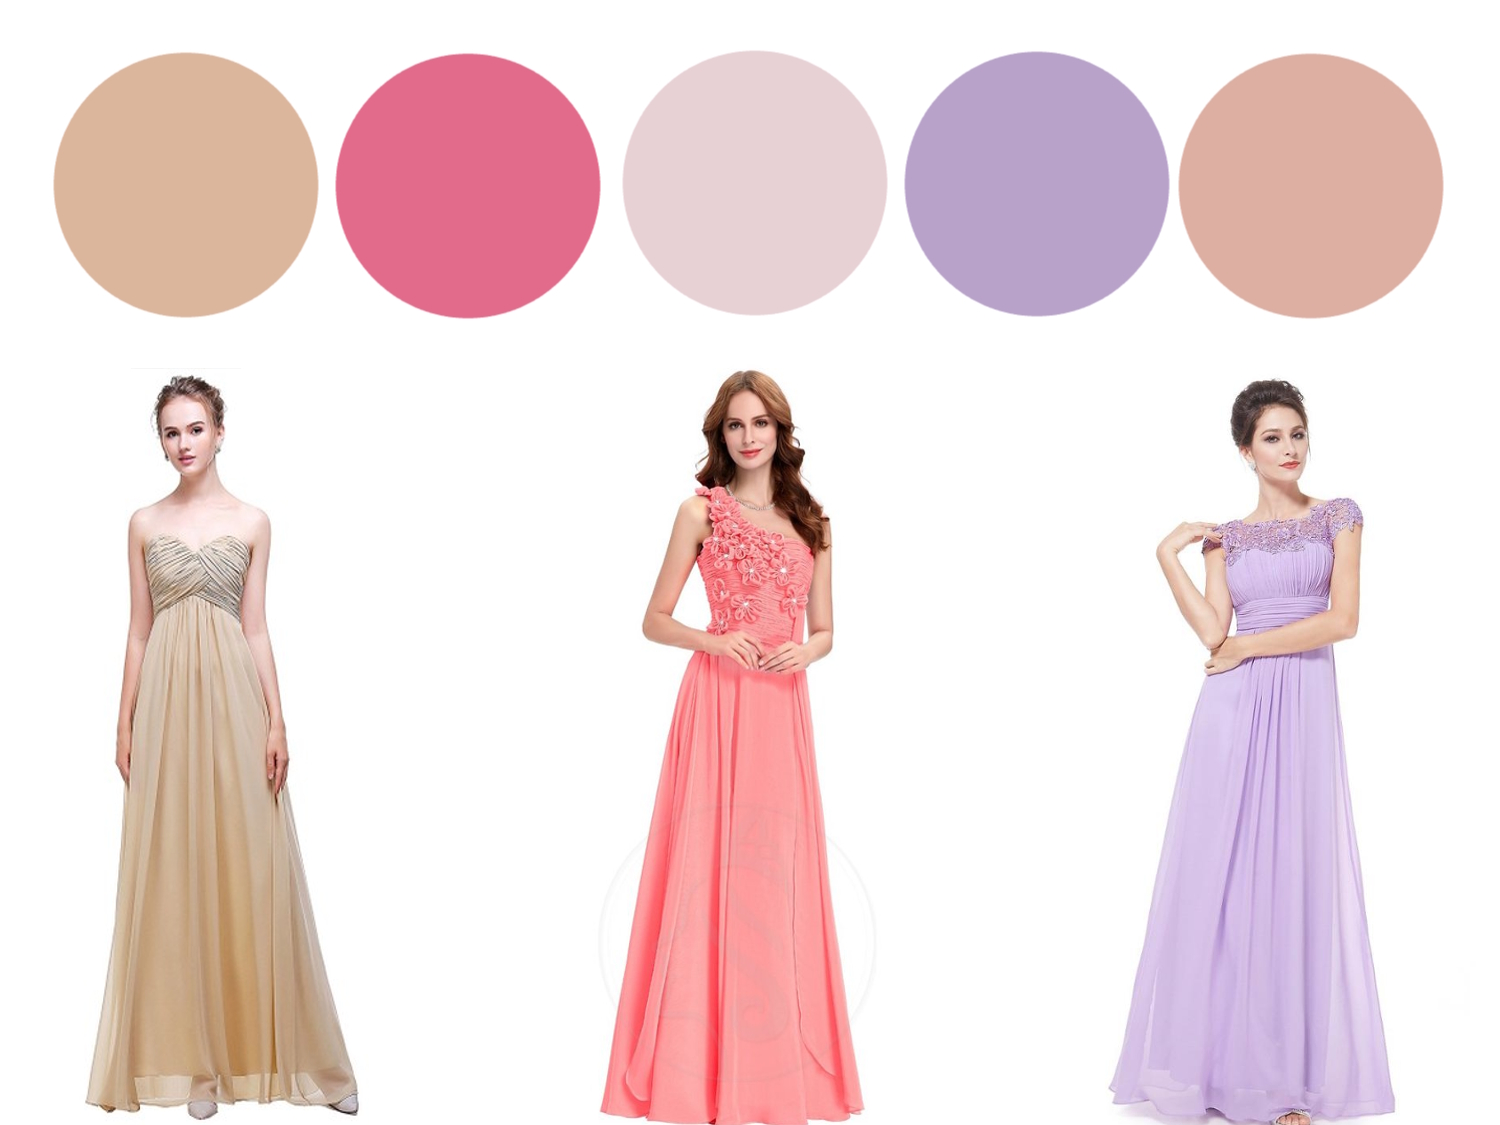 Best Wedding Themes Ideas For 2018 | Part 2 Bridesmaid Dresses